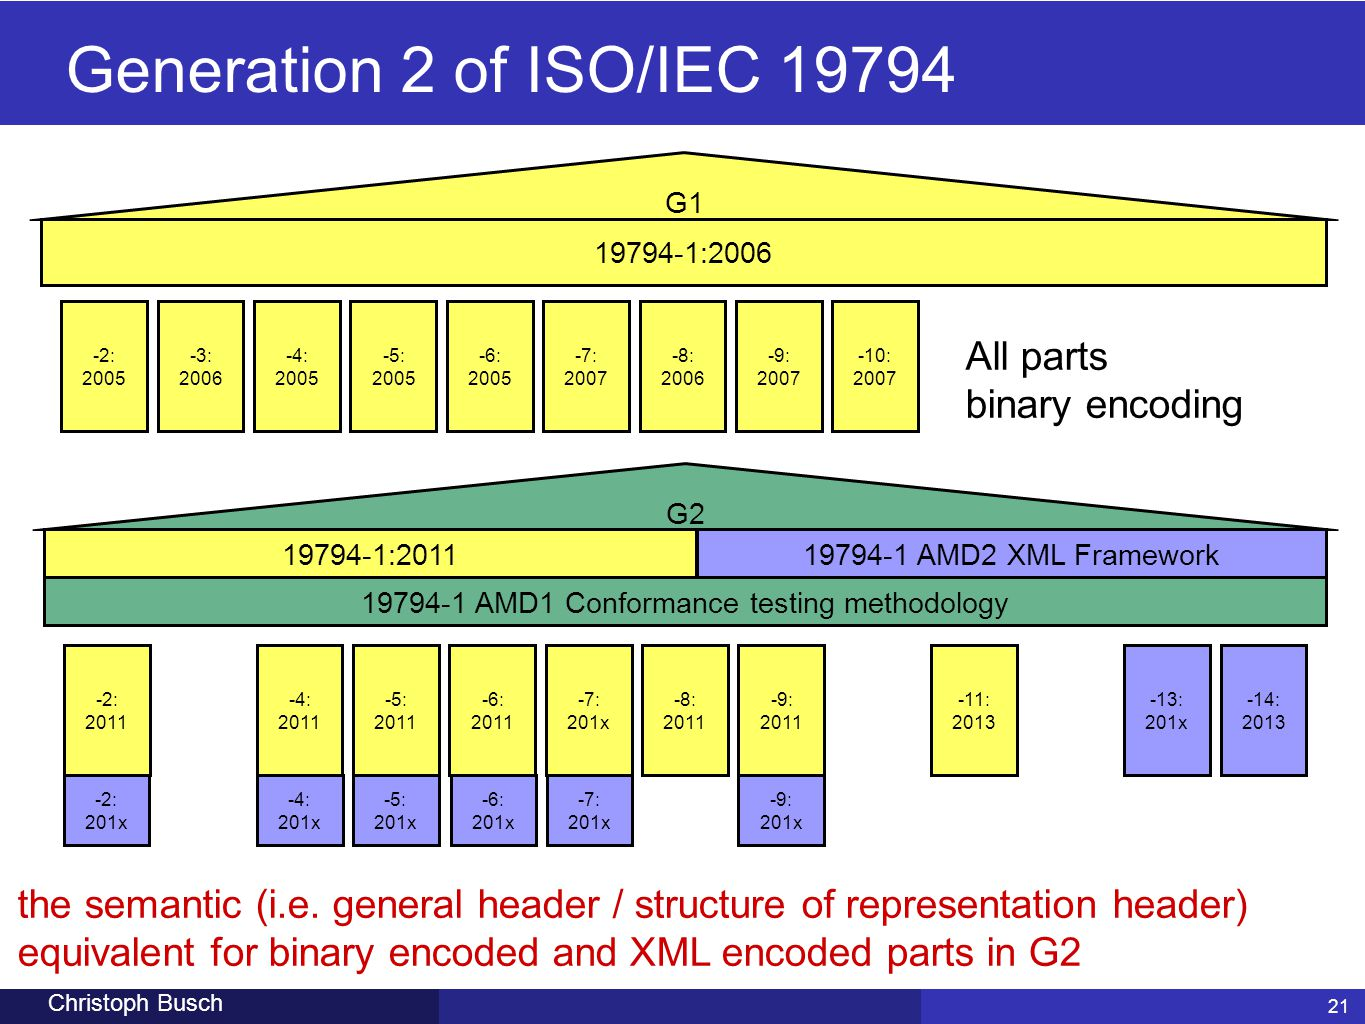 19794-1 AMD1 Conformance testing methodology